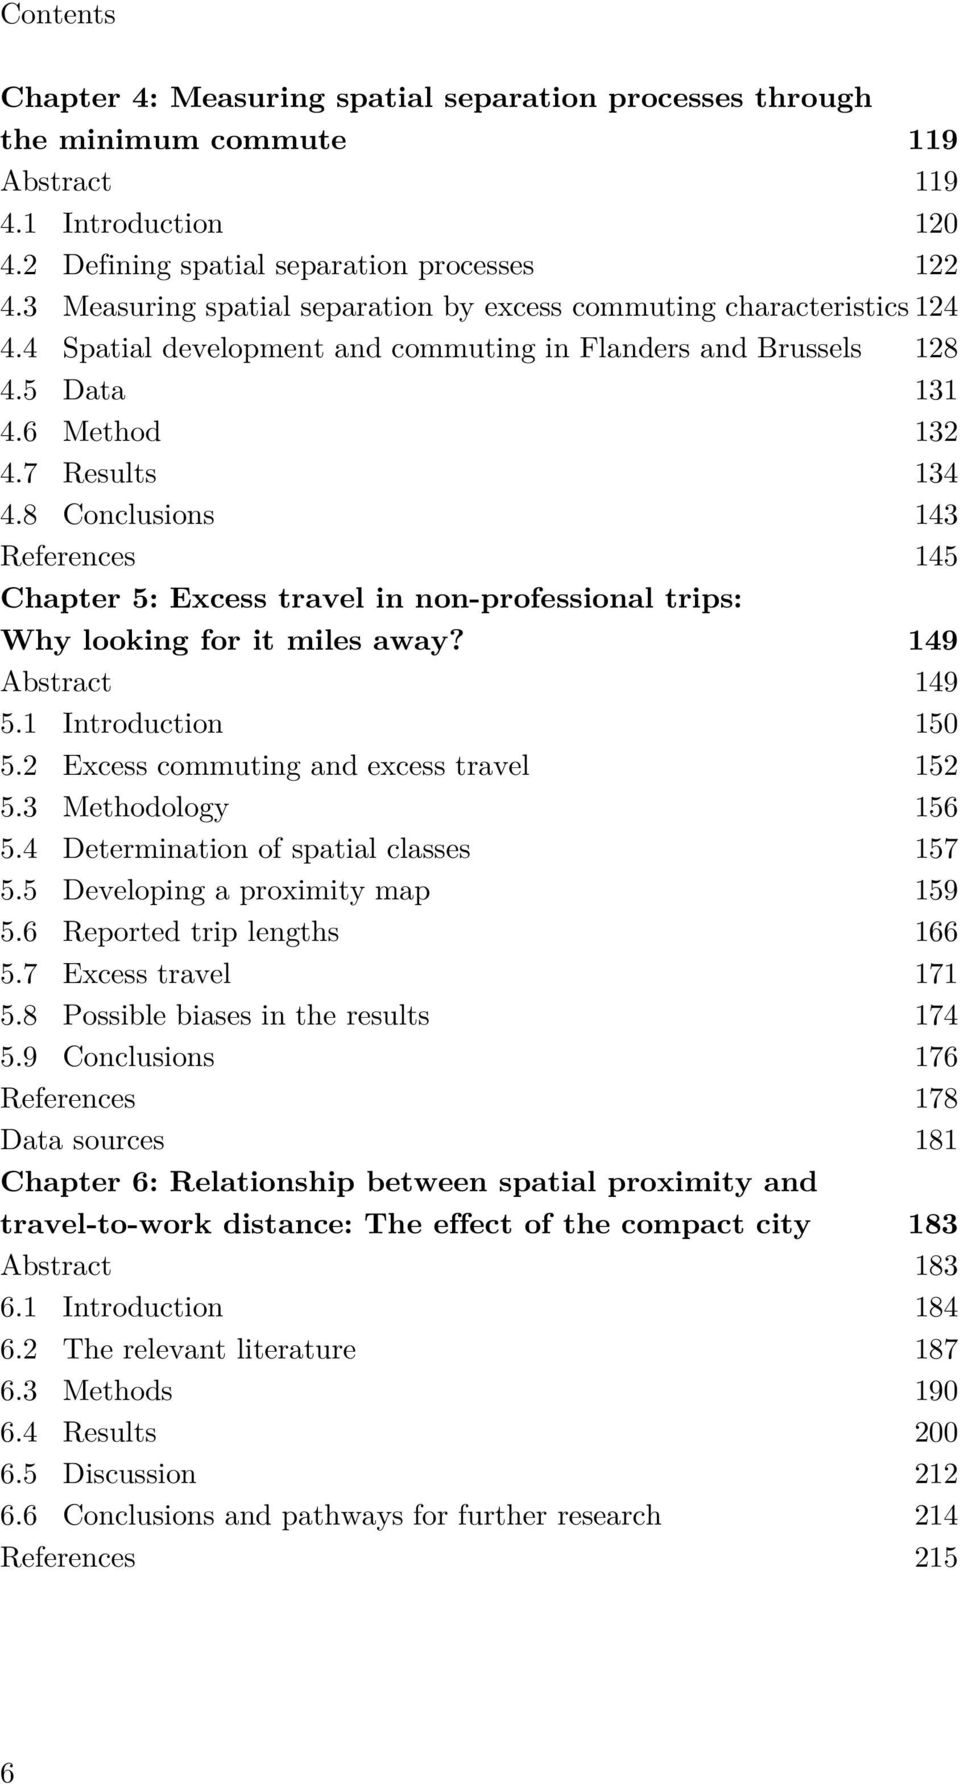 8 Conclusions 143 References 145 Chapter 5: Excess travel in non-professional trips: Why looking for it miles away? 149 Abstract 149 5.1 Introduction 150 5.2 Excess commuting and excess travel 152 5.